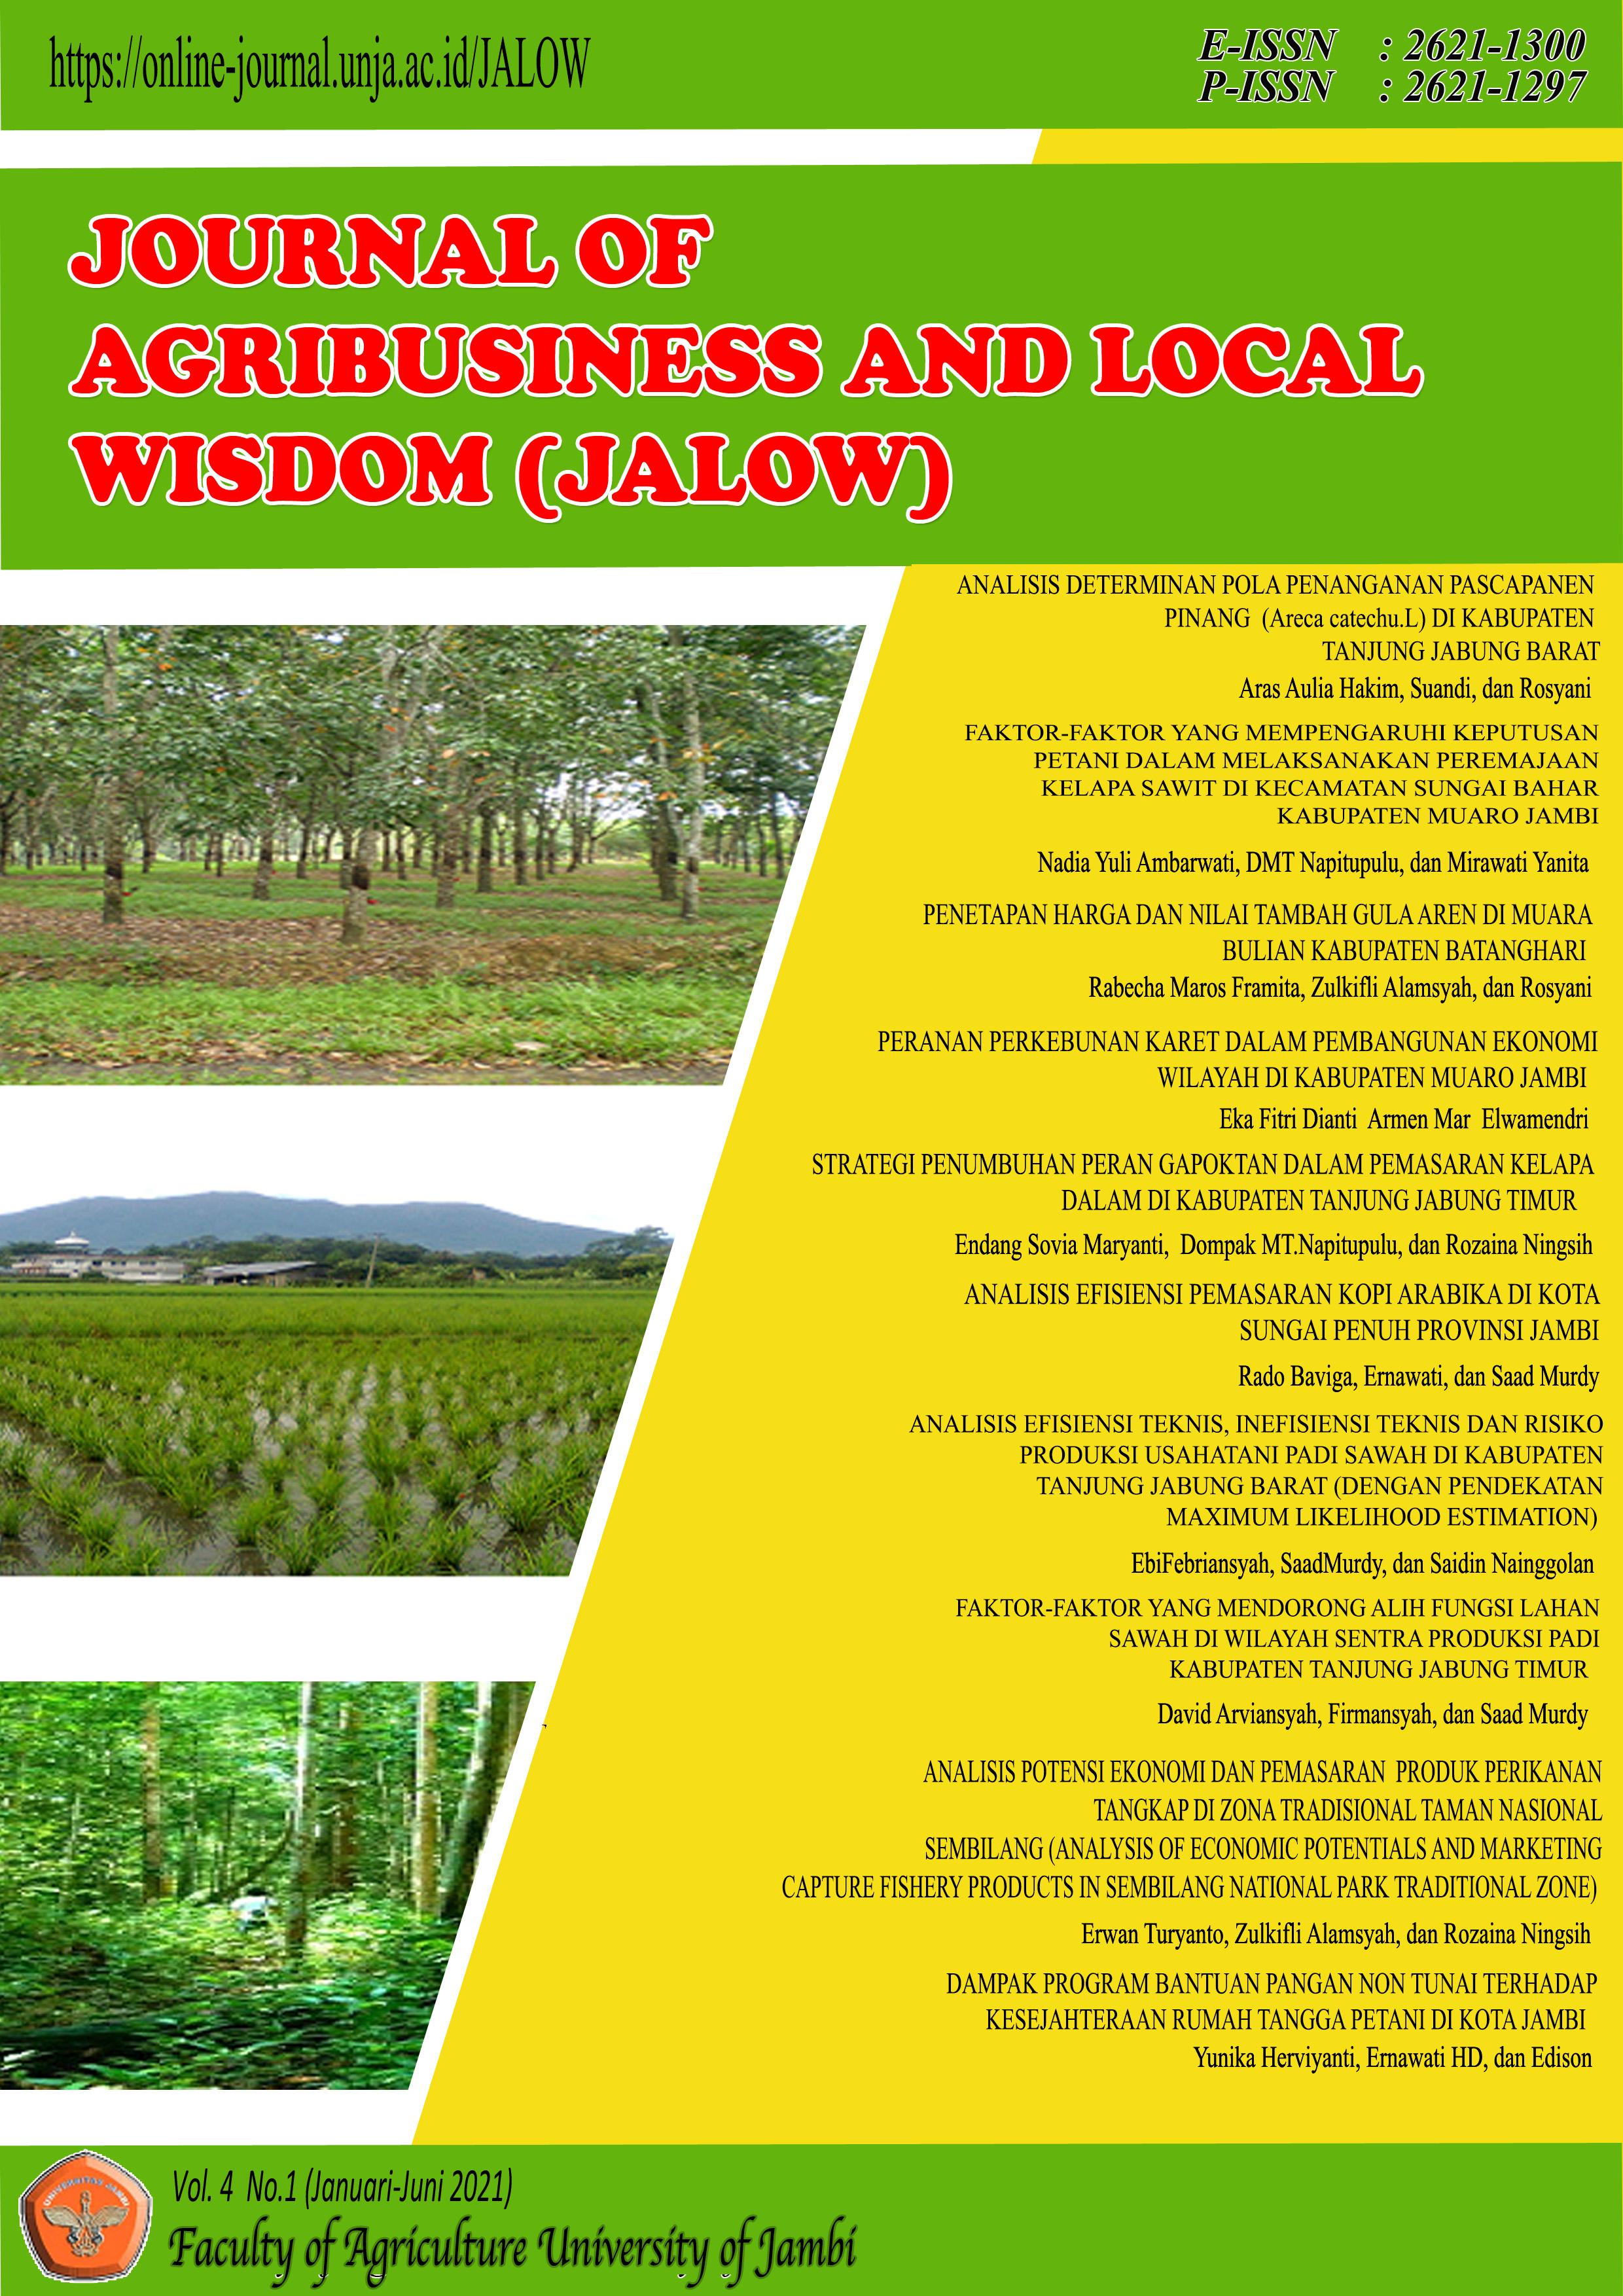 View Vol. 4 No. 1 (2021): Journal Agribusineess and Local Wisdom